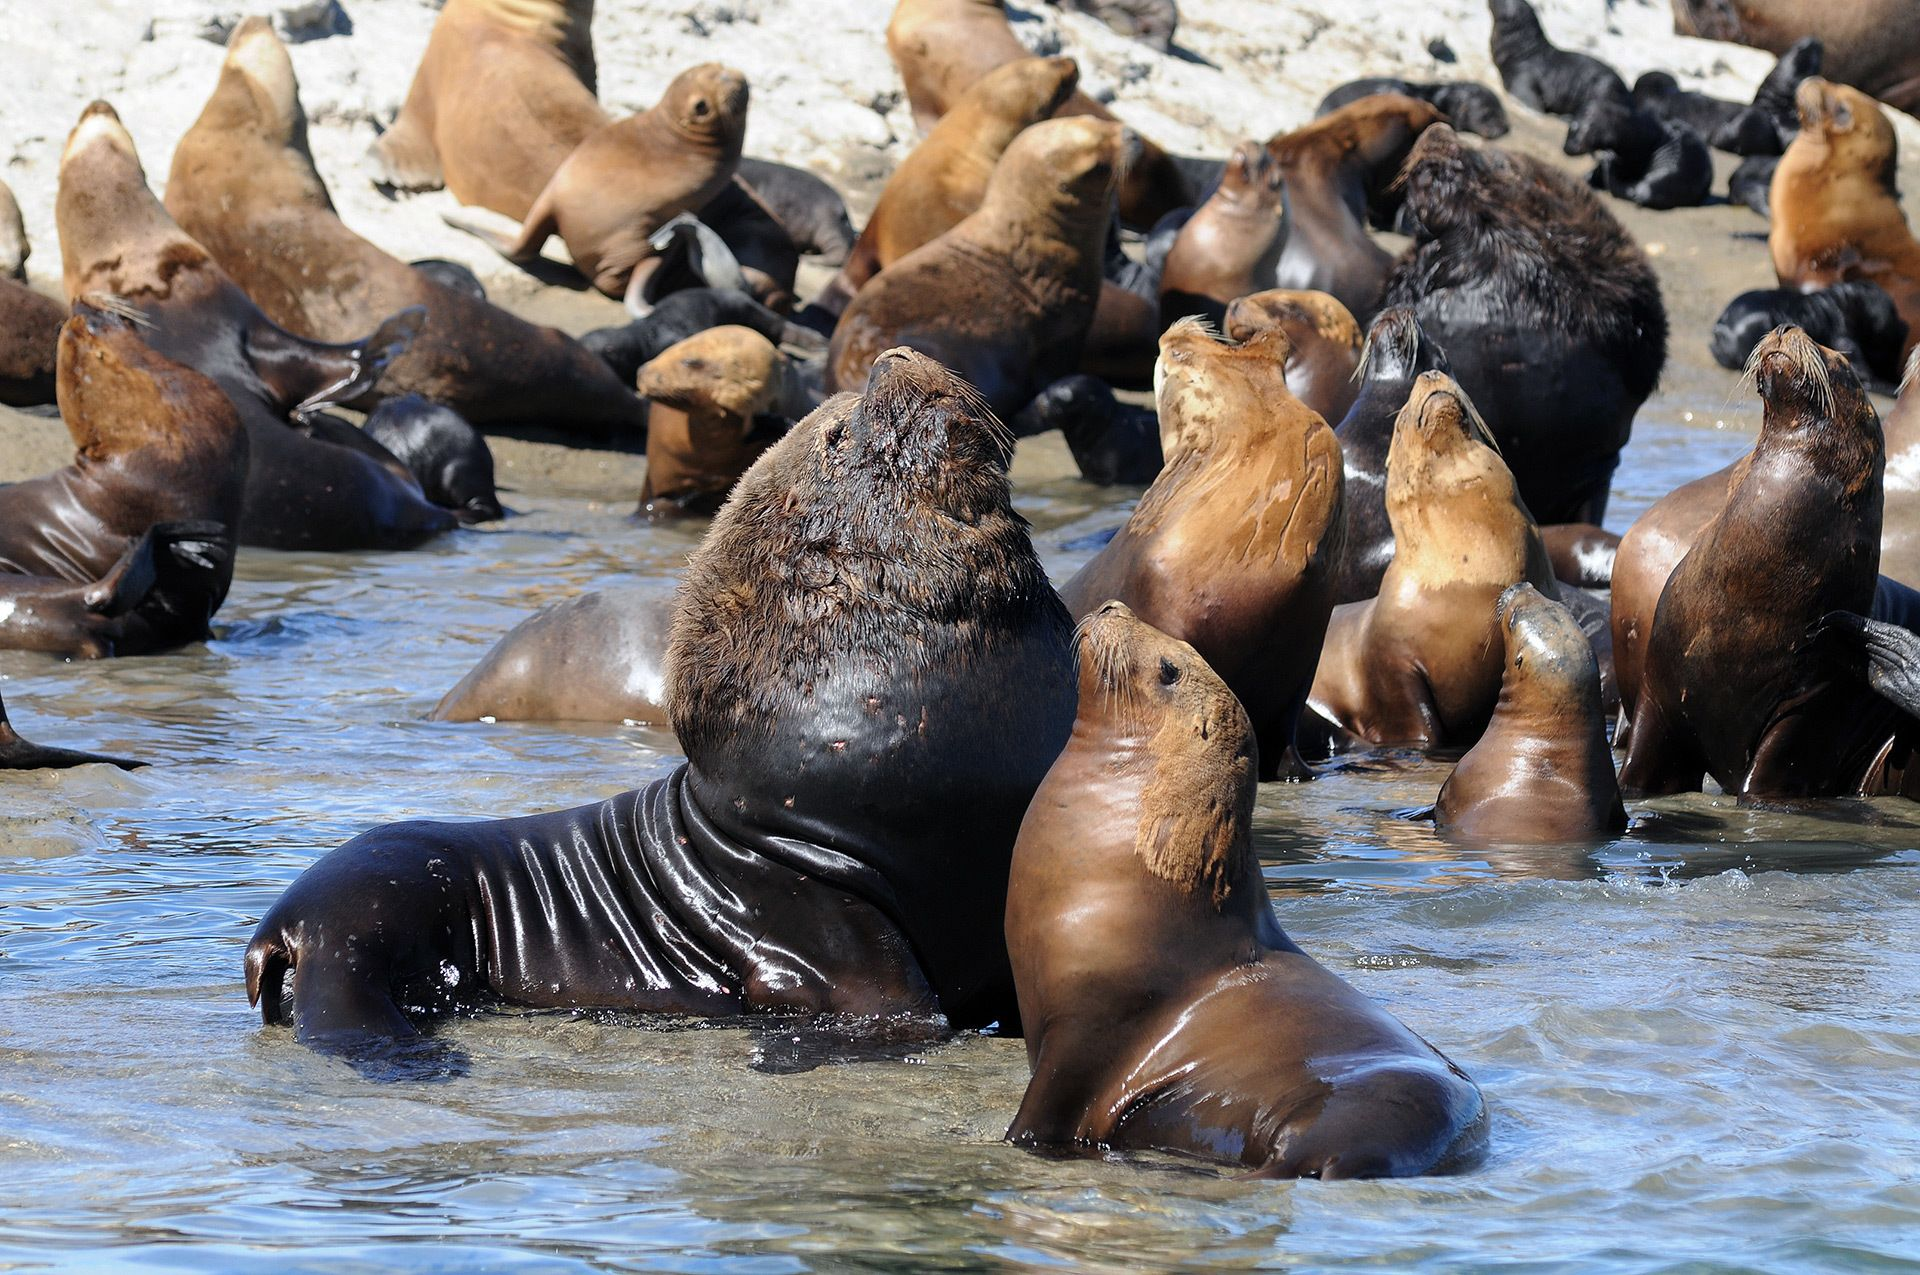 Puerto Madryn City Tour & Sea Lions at Punta Loma